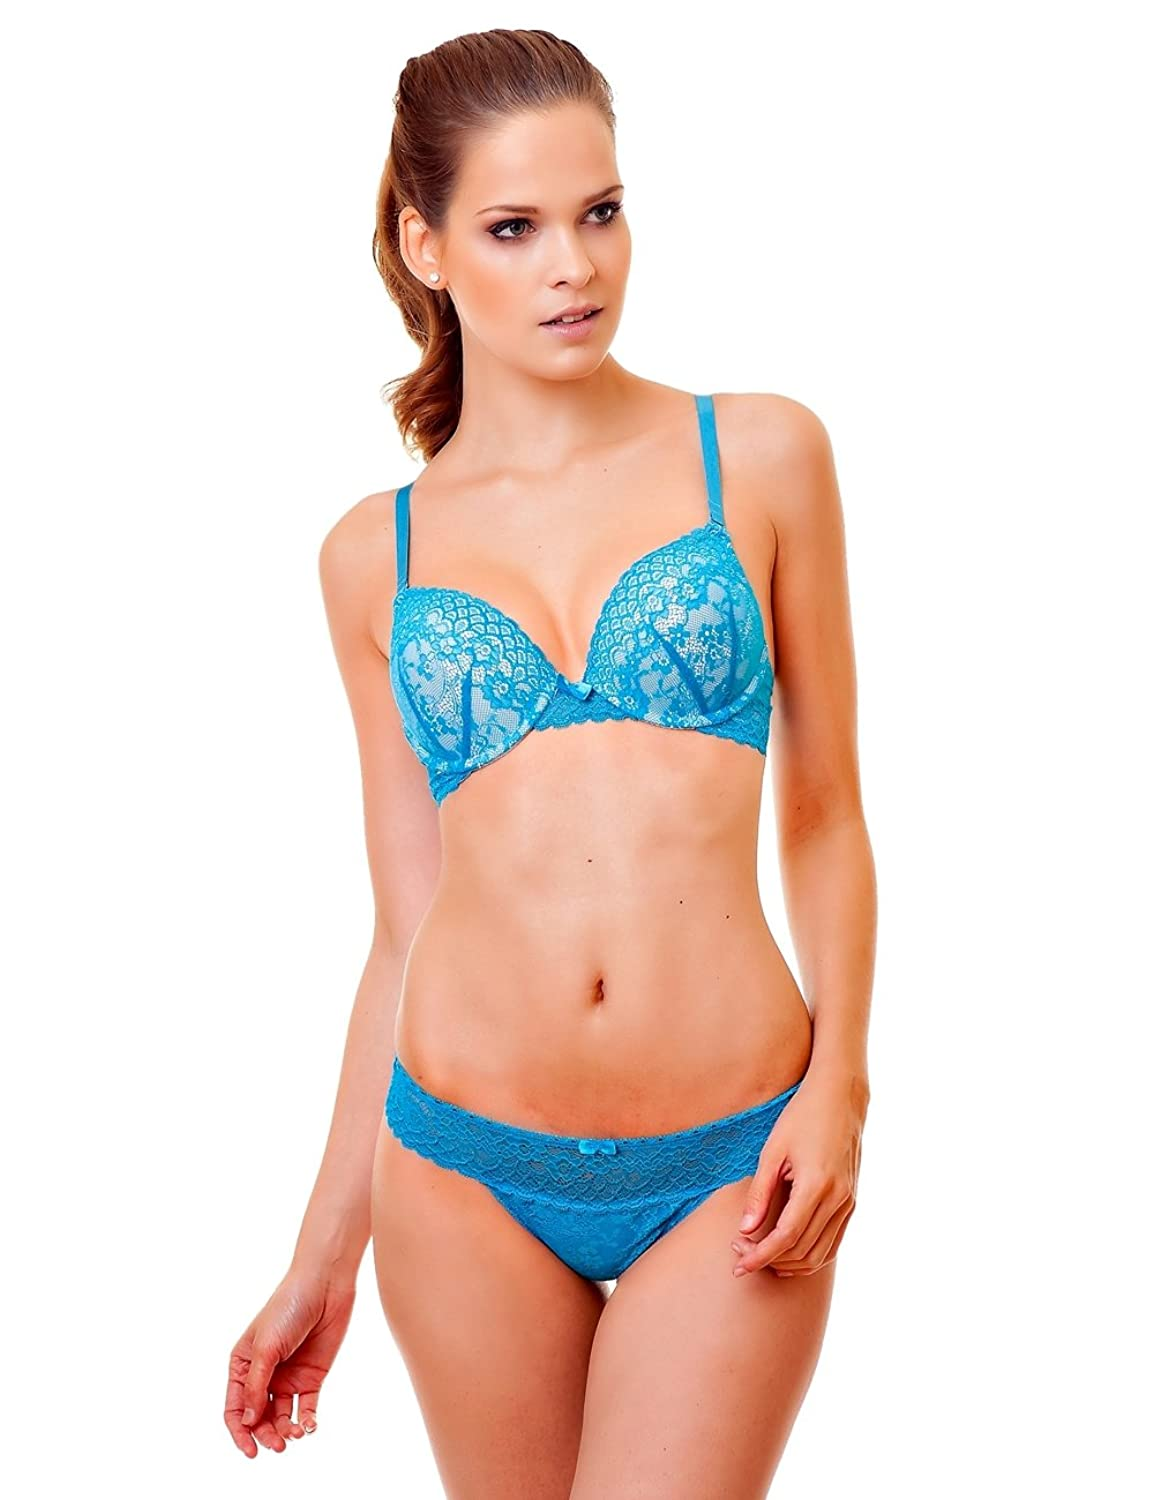 Mega Double PUSH-UP BH-Set mit String-Tanga Dessous-Set mit Spitze